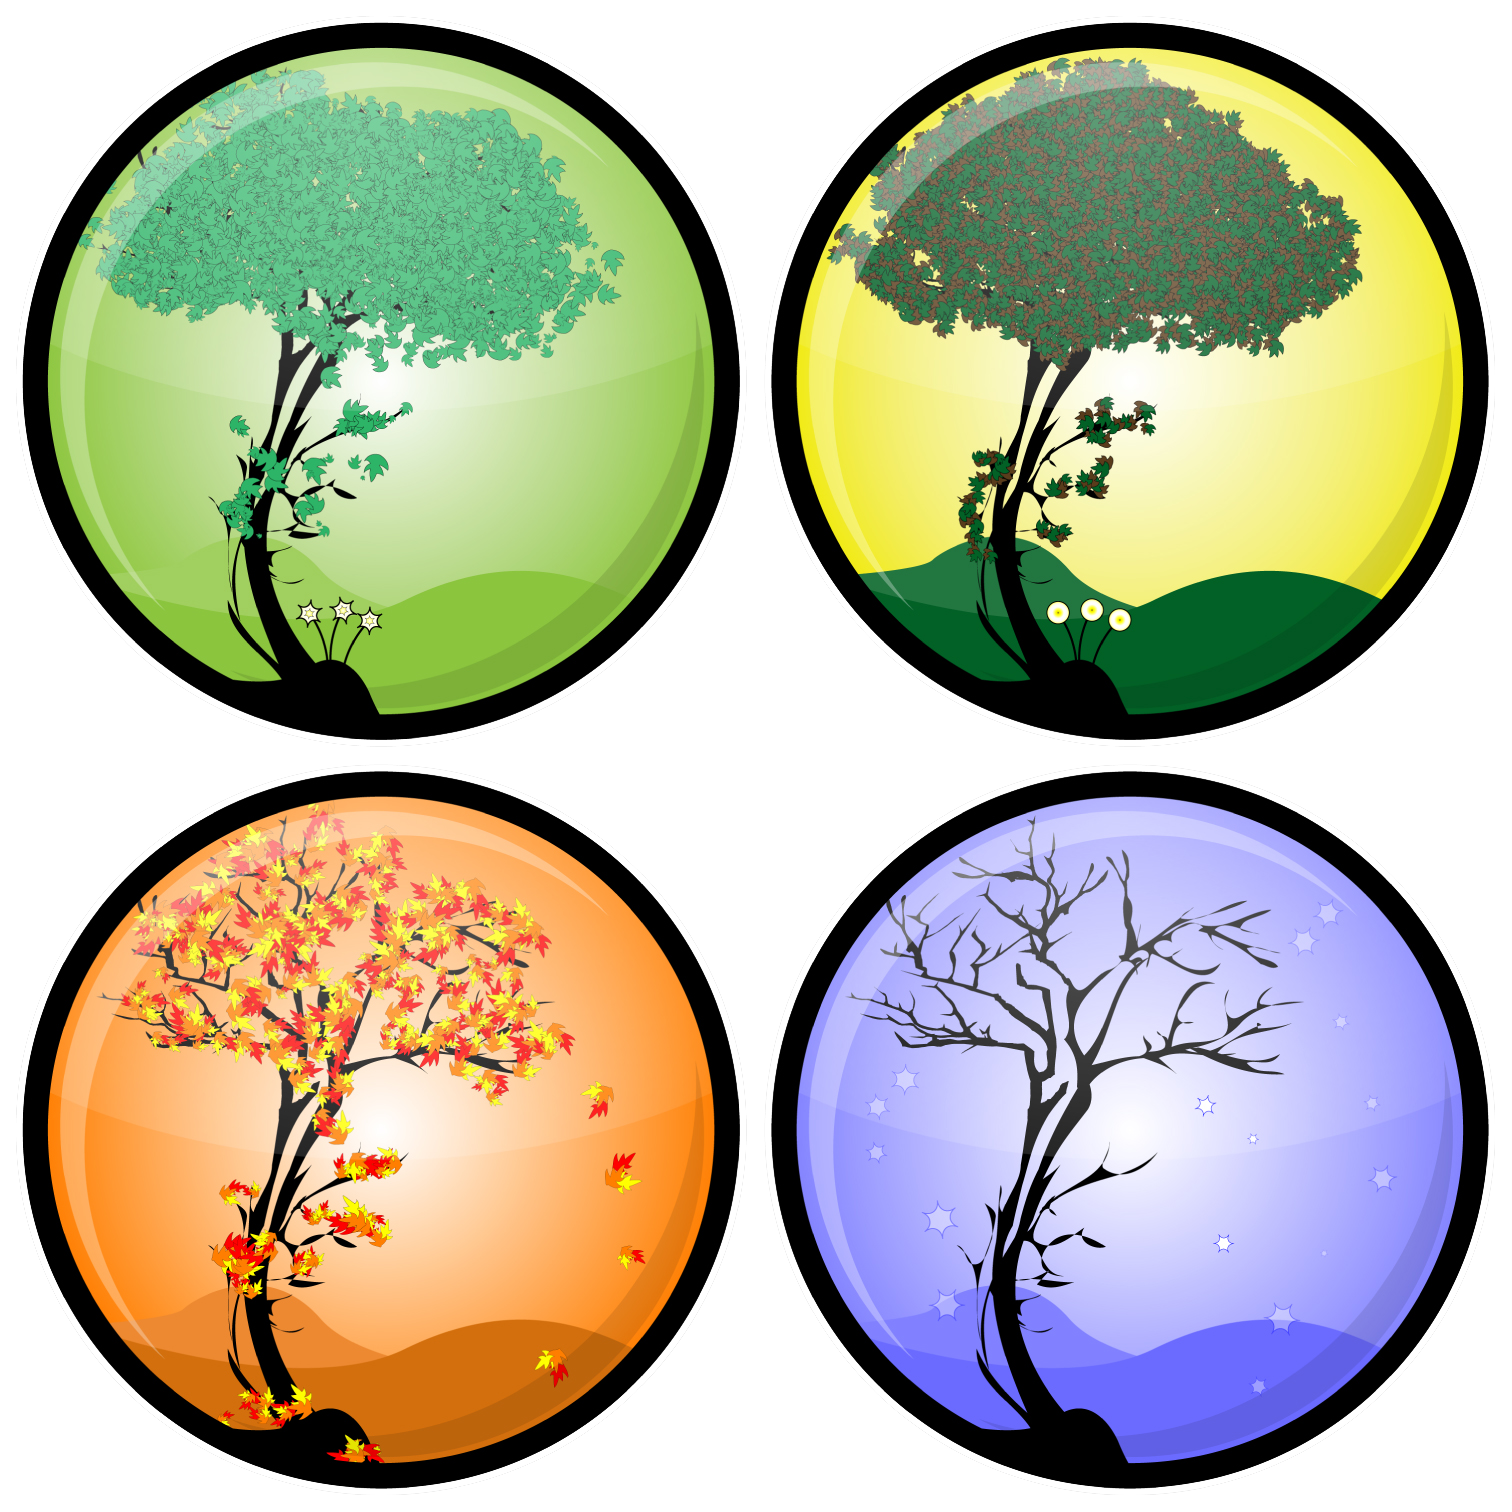 Season clipart season earth. Ecosystems productivity distributions diversity